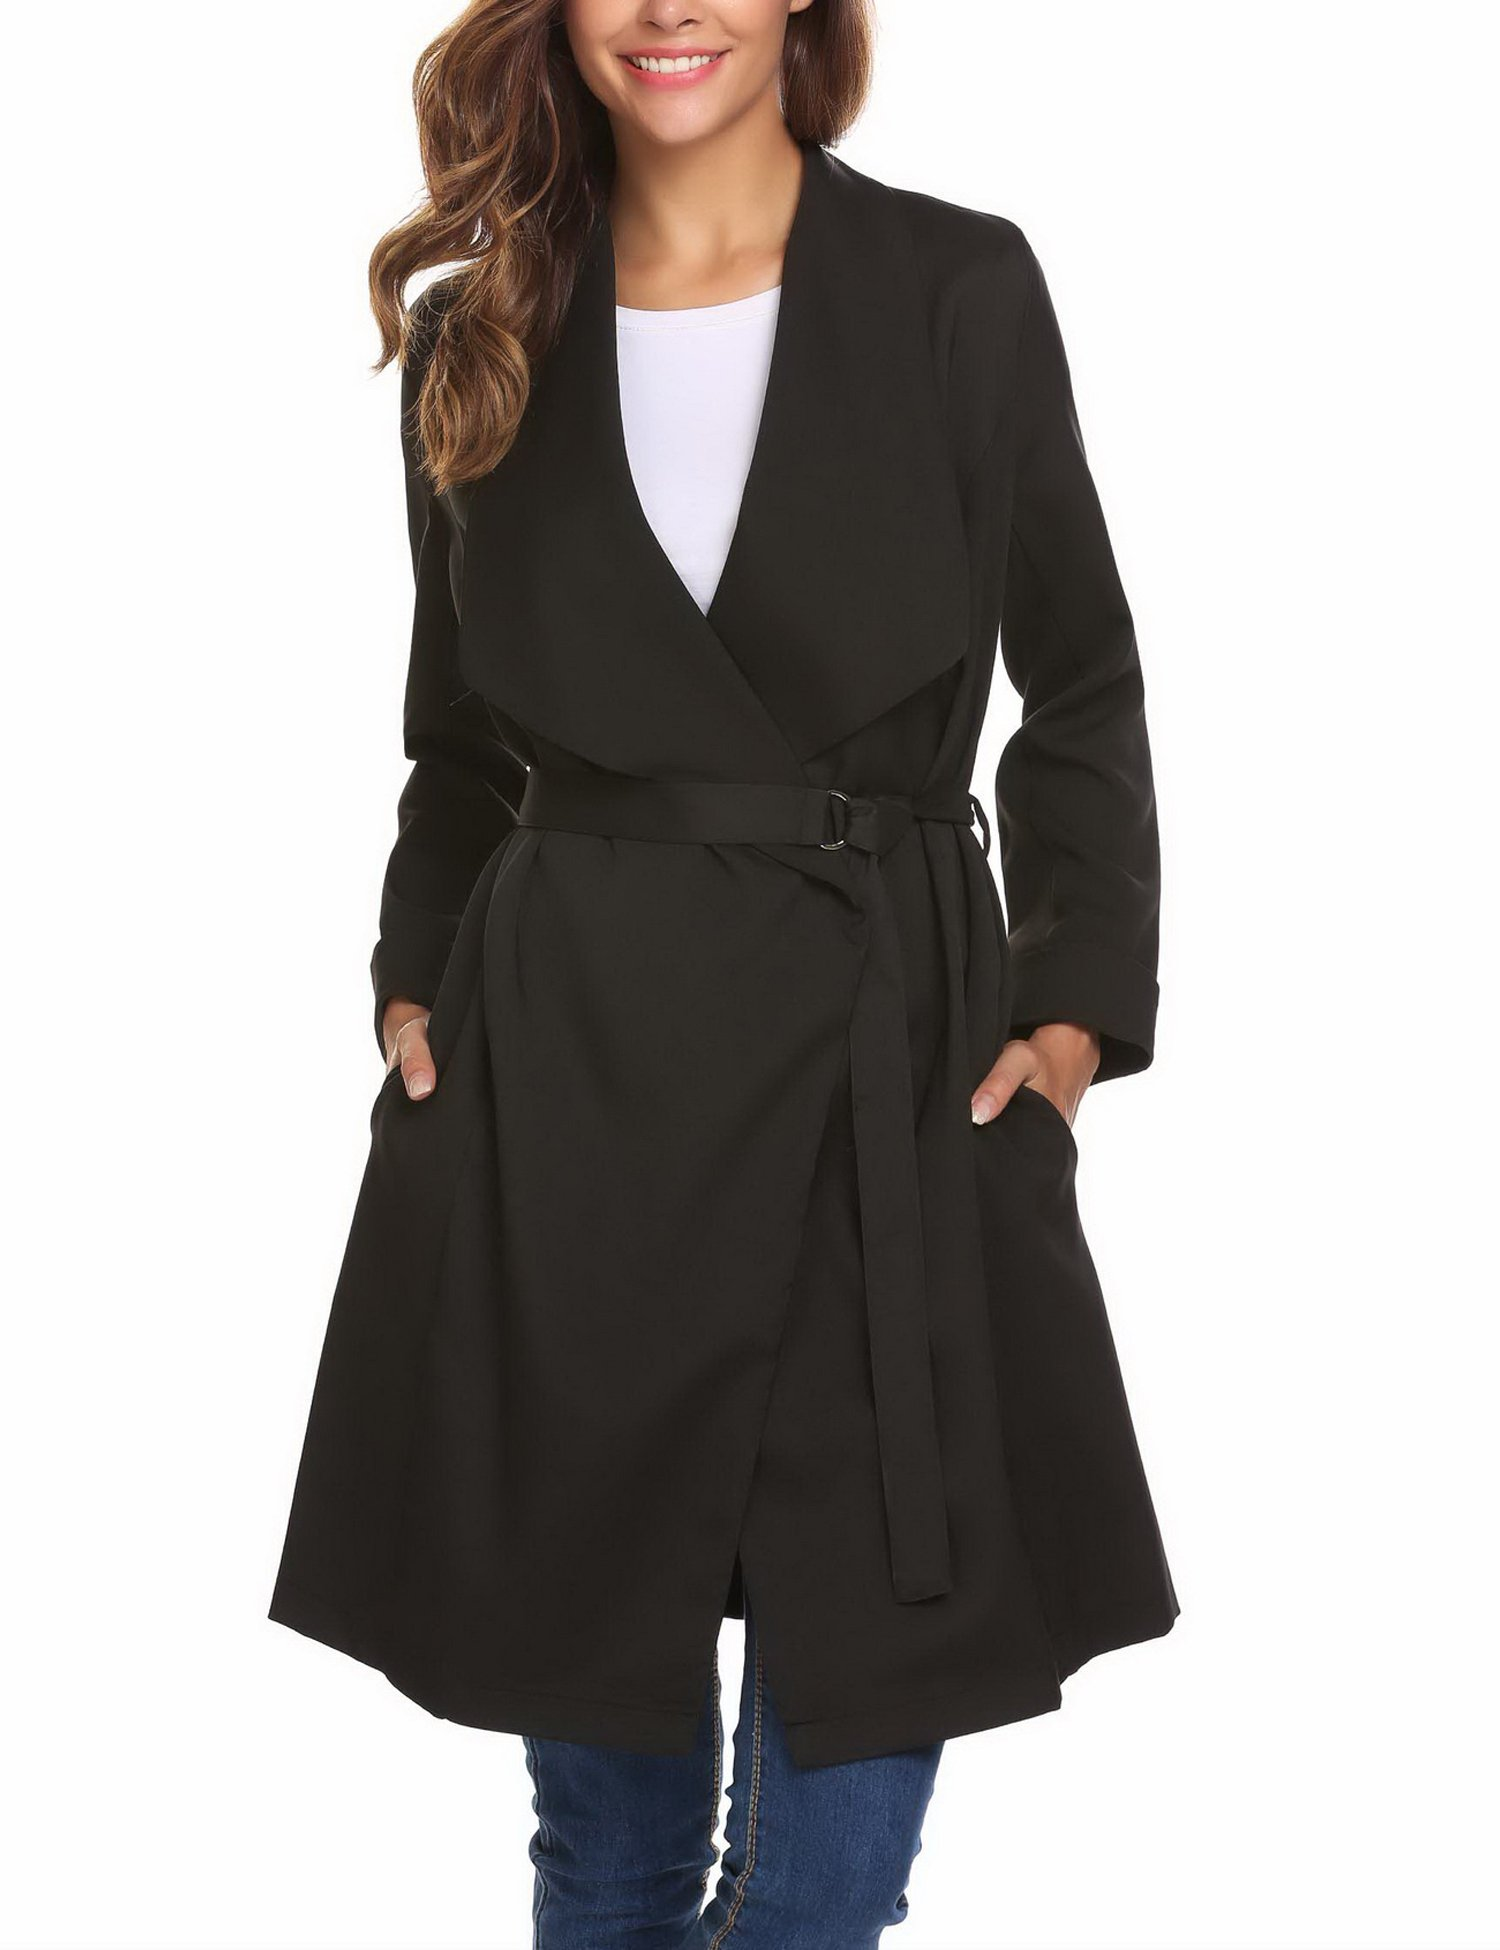 Mofavor Women's Lapel Collar Casual Open Front Cardigan Belted Trench Coat Jacket With Pockets(Black,L)